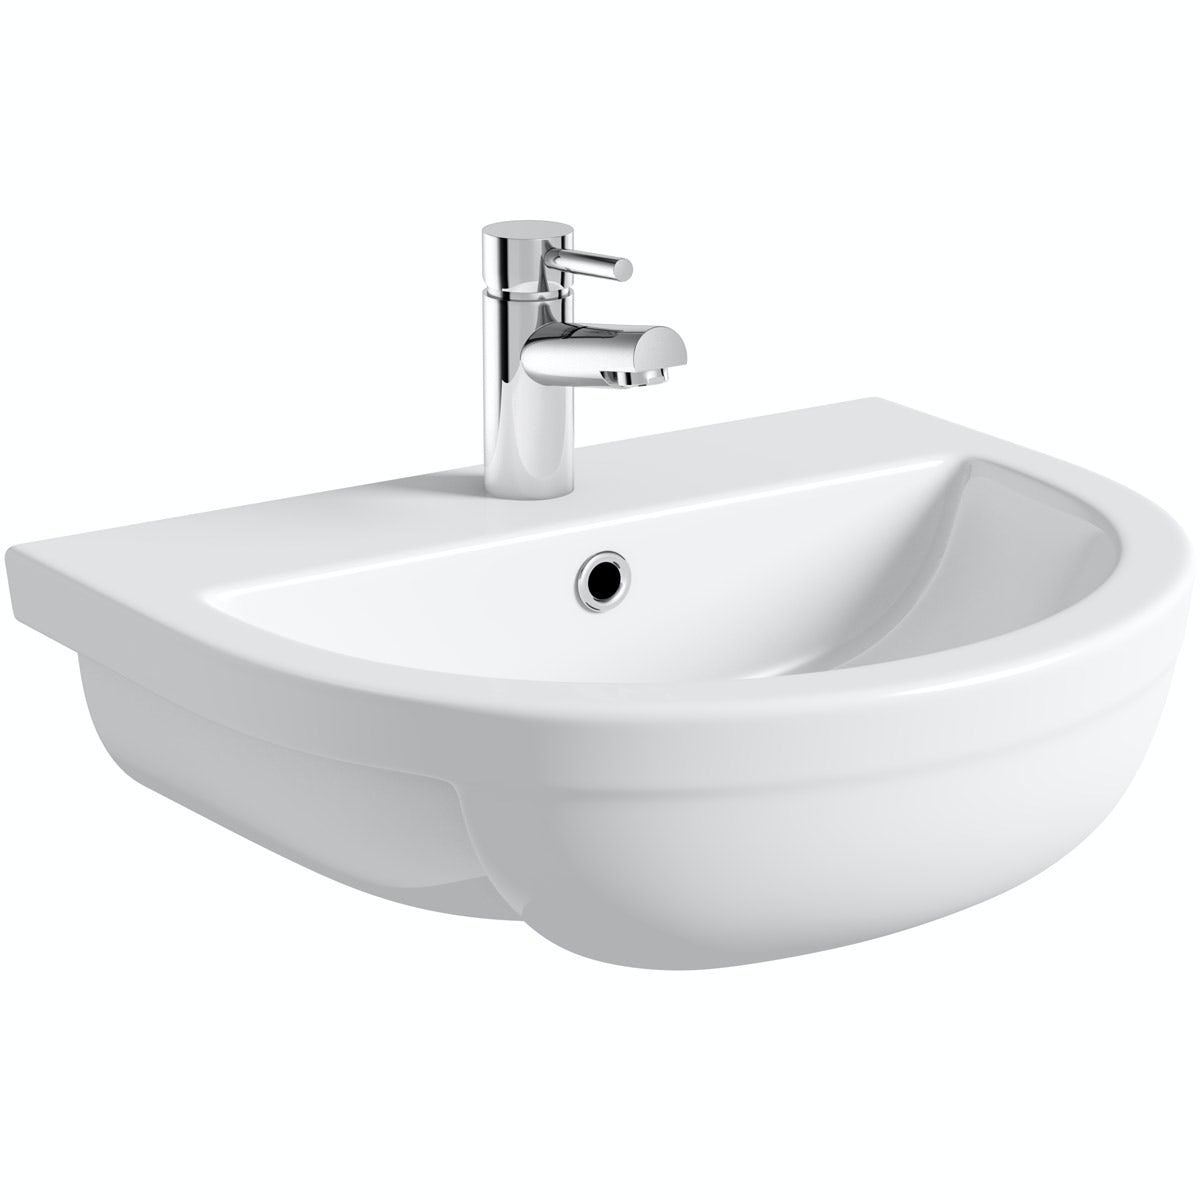 Orchard Elena 1 tap hole semi recessed counter top basin 500mm